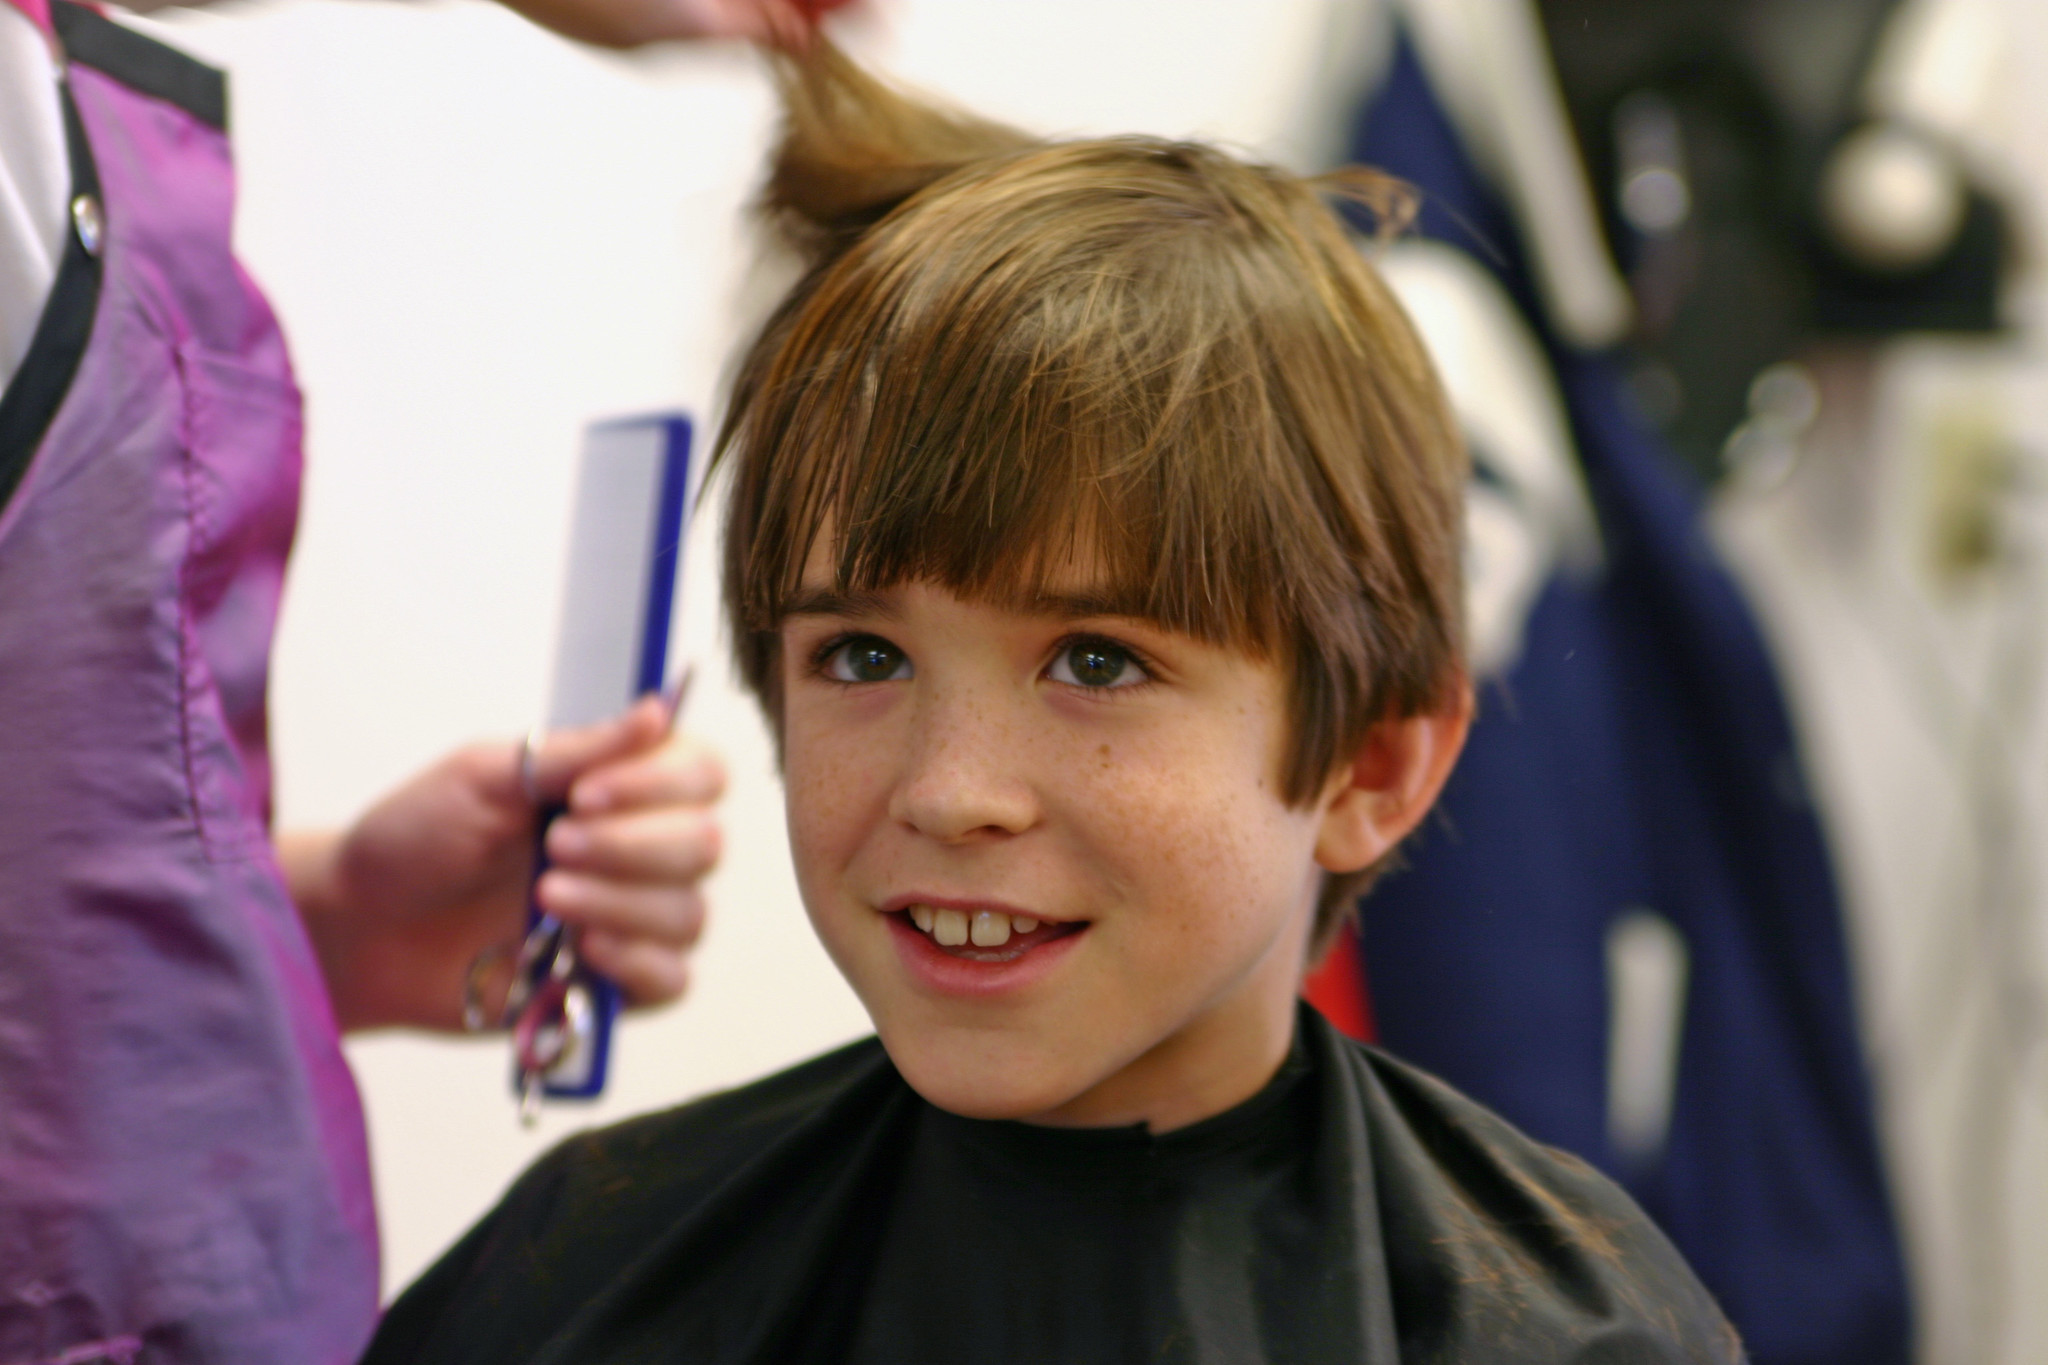 Back to school 10 haircuts for kids free 10 rewards at jc penney back to school 10 haircuts for kids free 10 rewards at jc penney sun sentinel winobraniefo Gallery